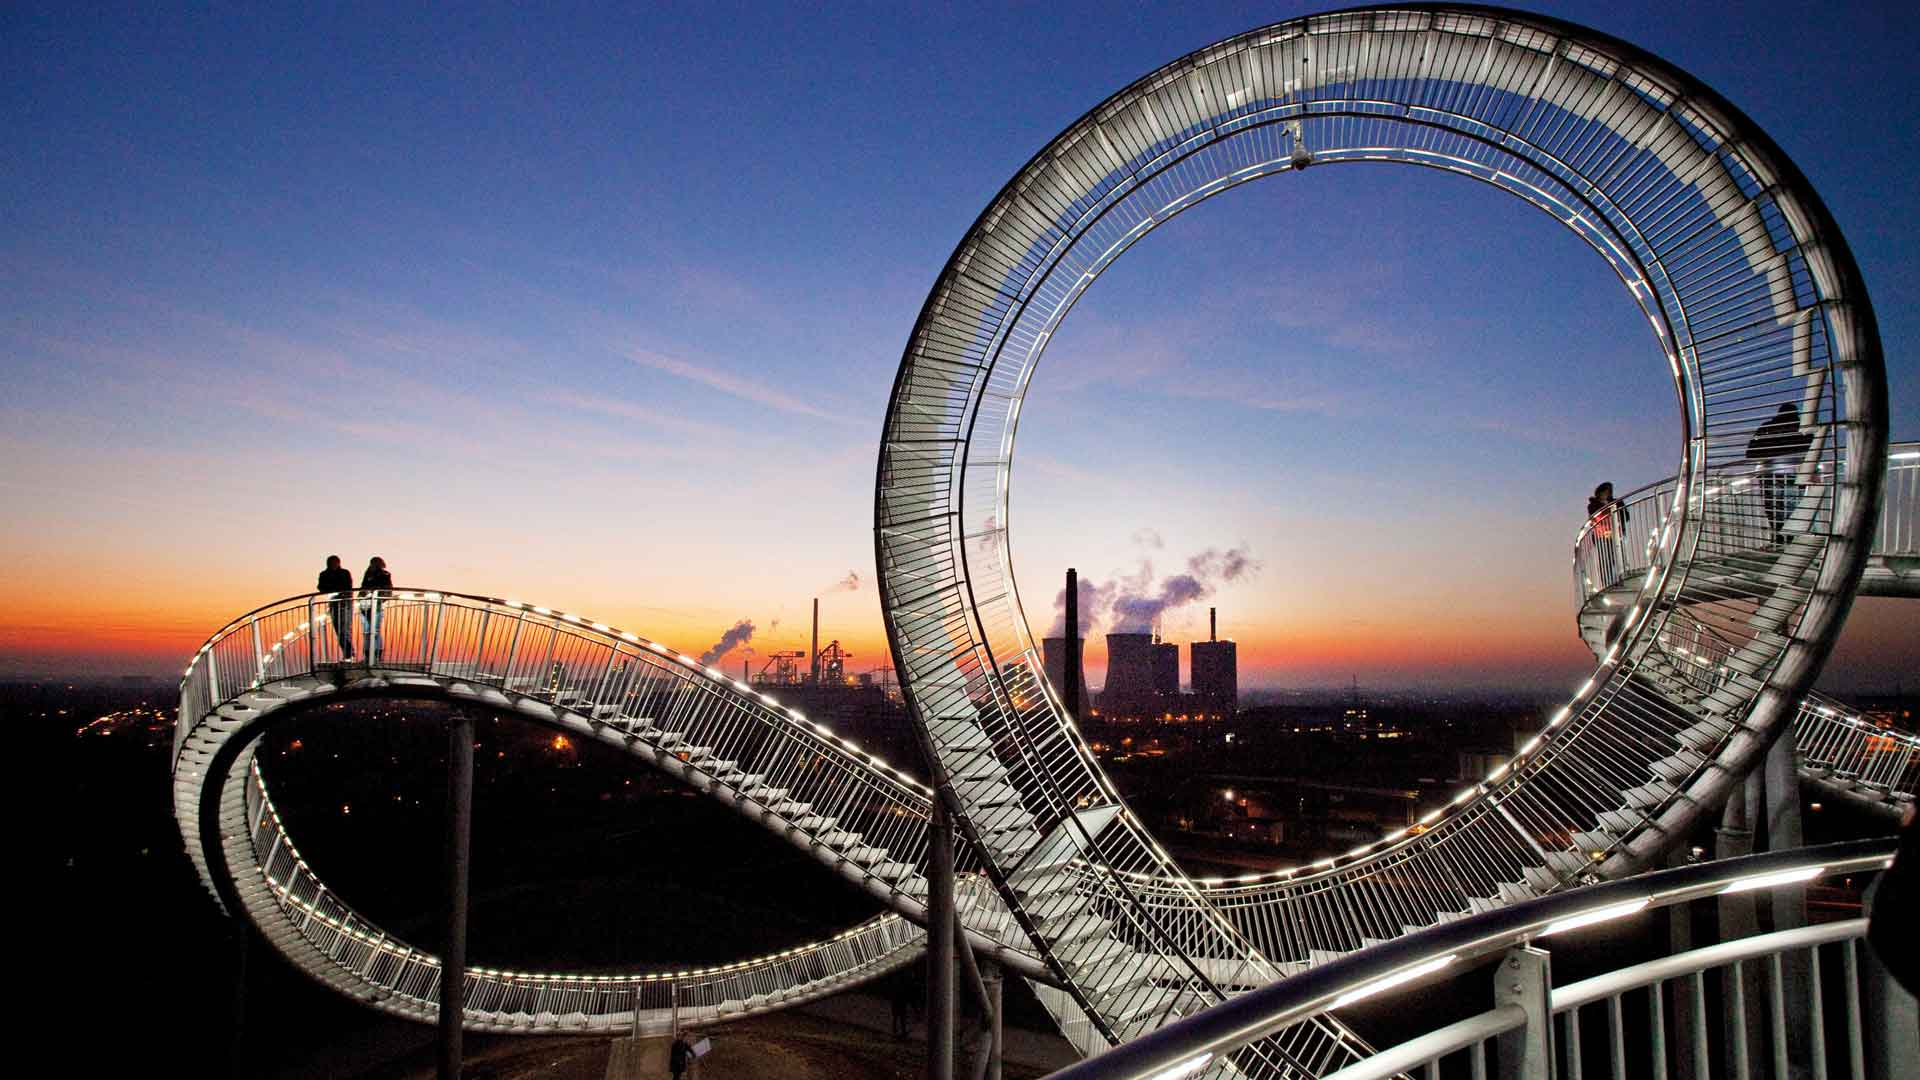 De Tiger & Turtle is een bewandelbare sculptuur in Duisburg.